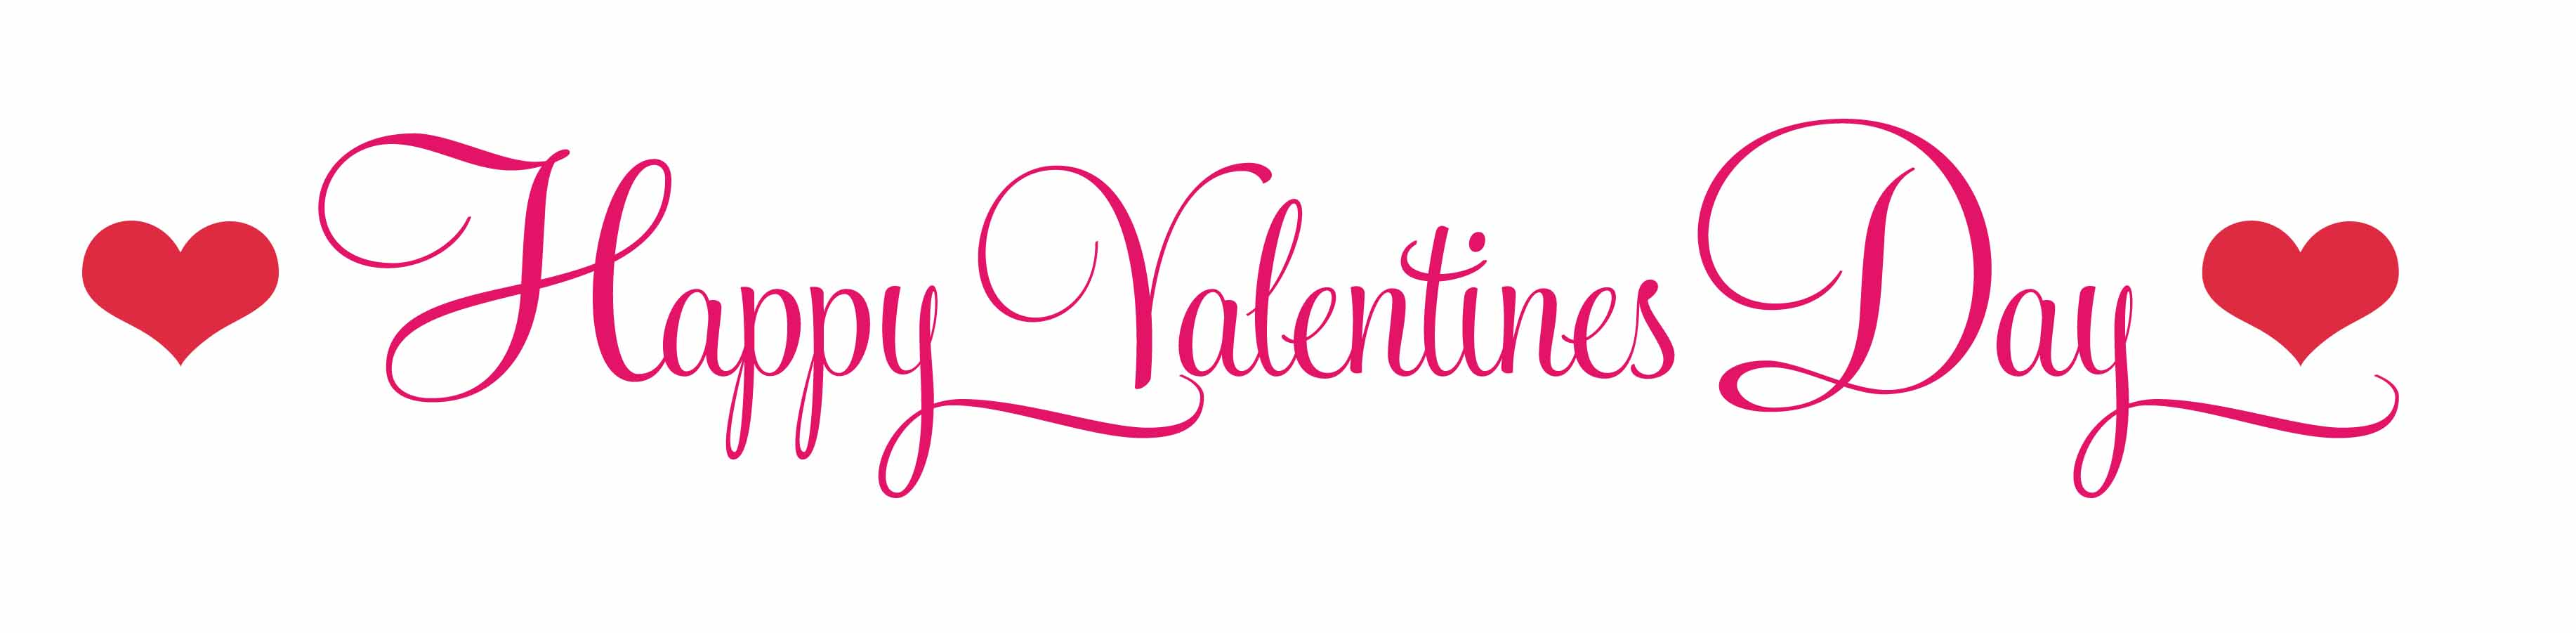 2017 Valentines Day Guide Featuring Starlooks Profession Cosmetics.   Night  Helper